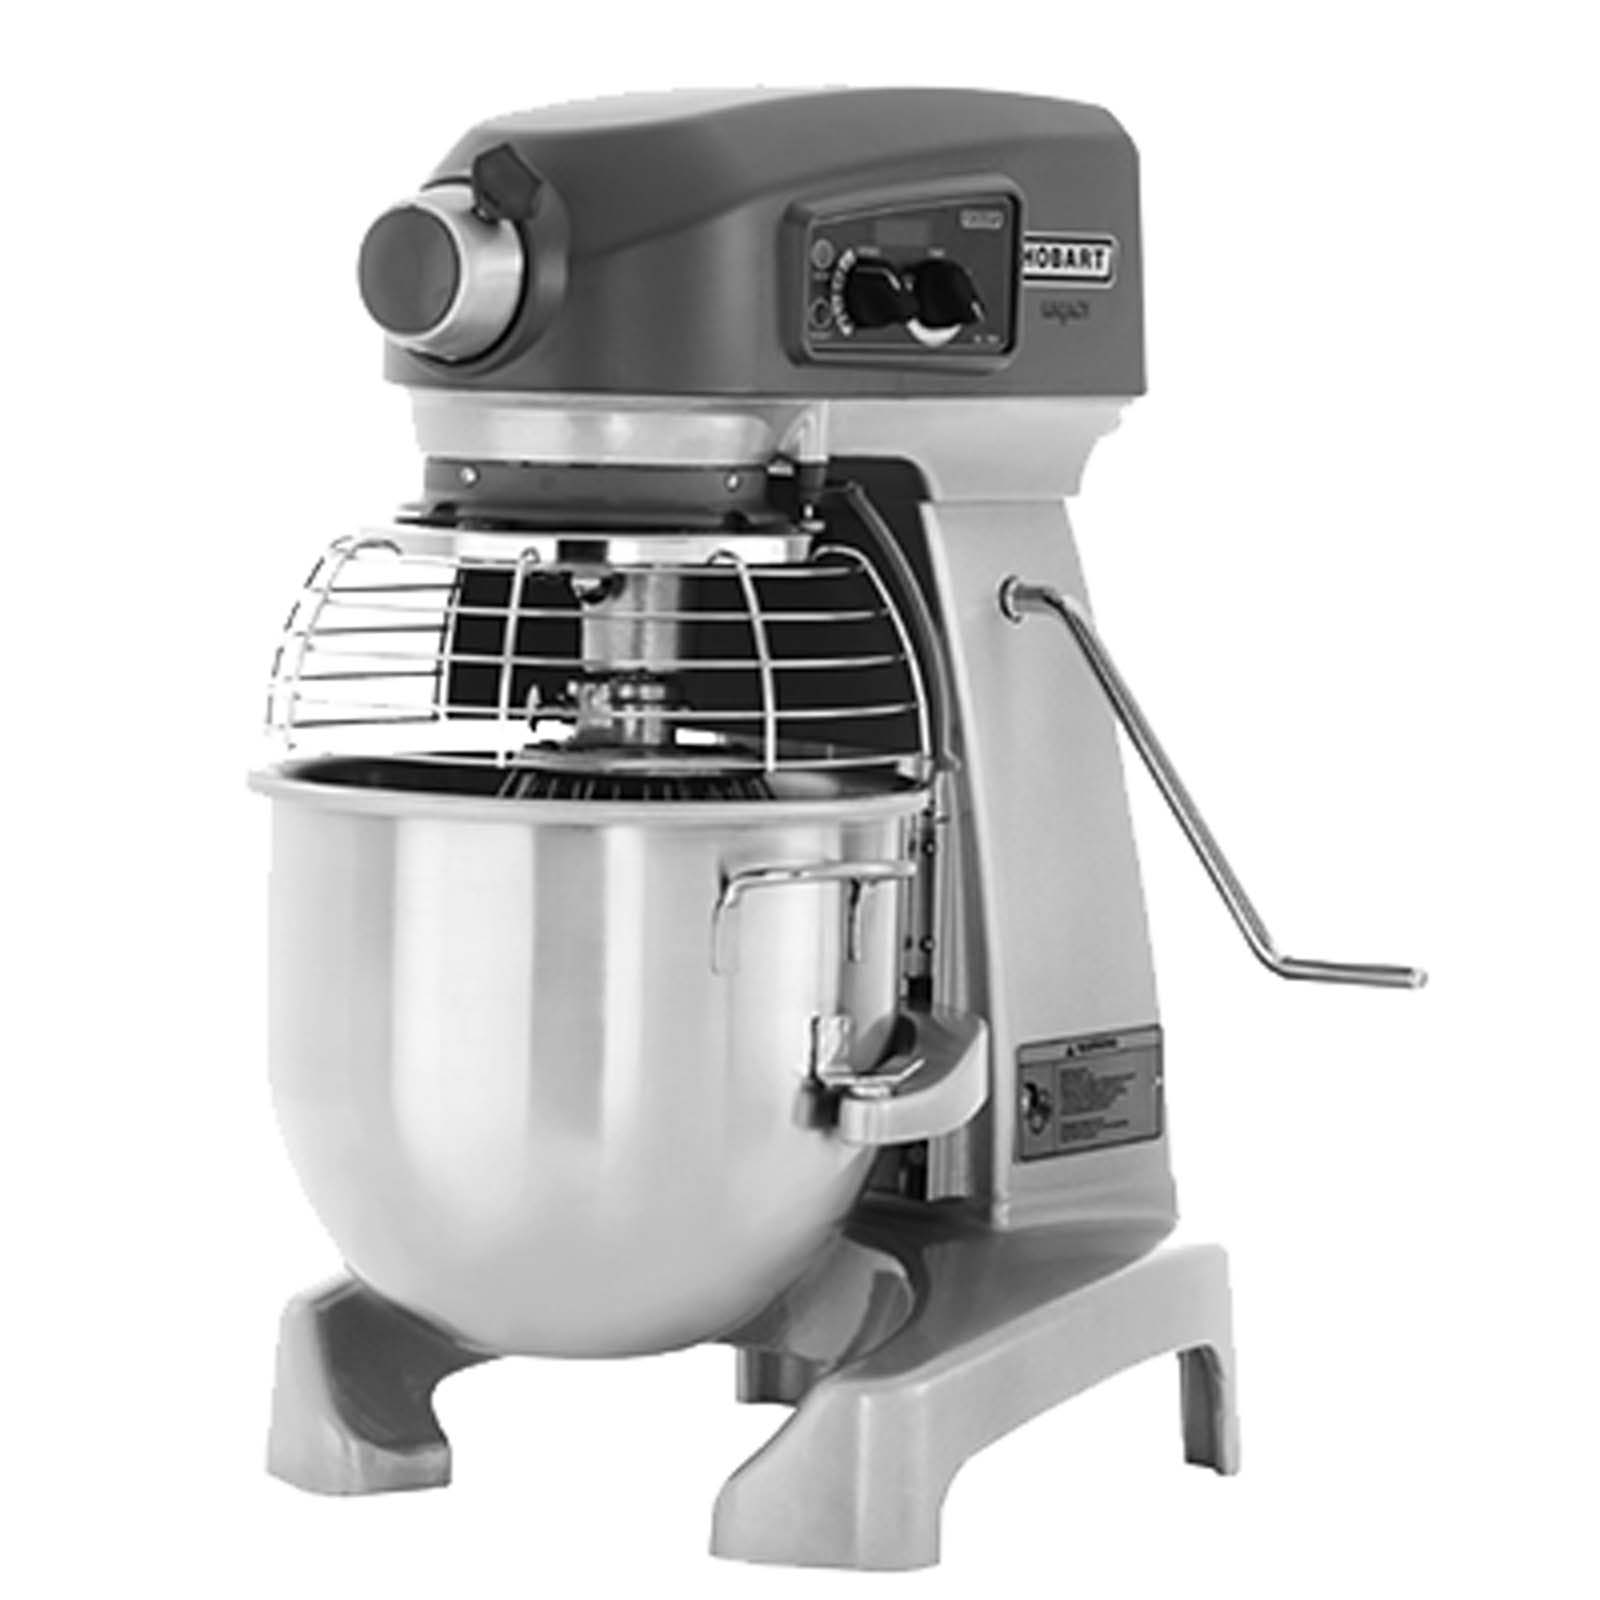 Hobart HL200-1STD Commercial Bench Type Mixer with 20 Qt Mixing Bowl Single Phase by